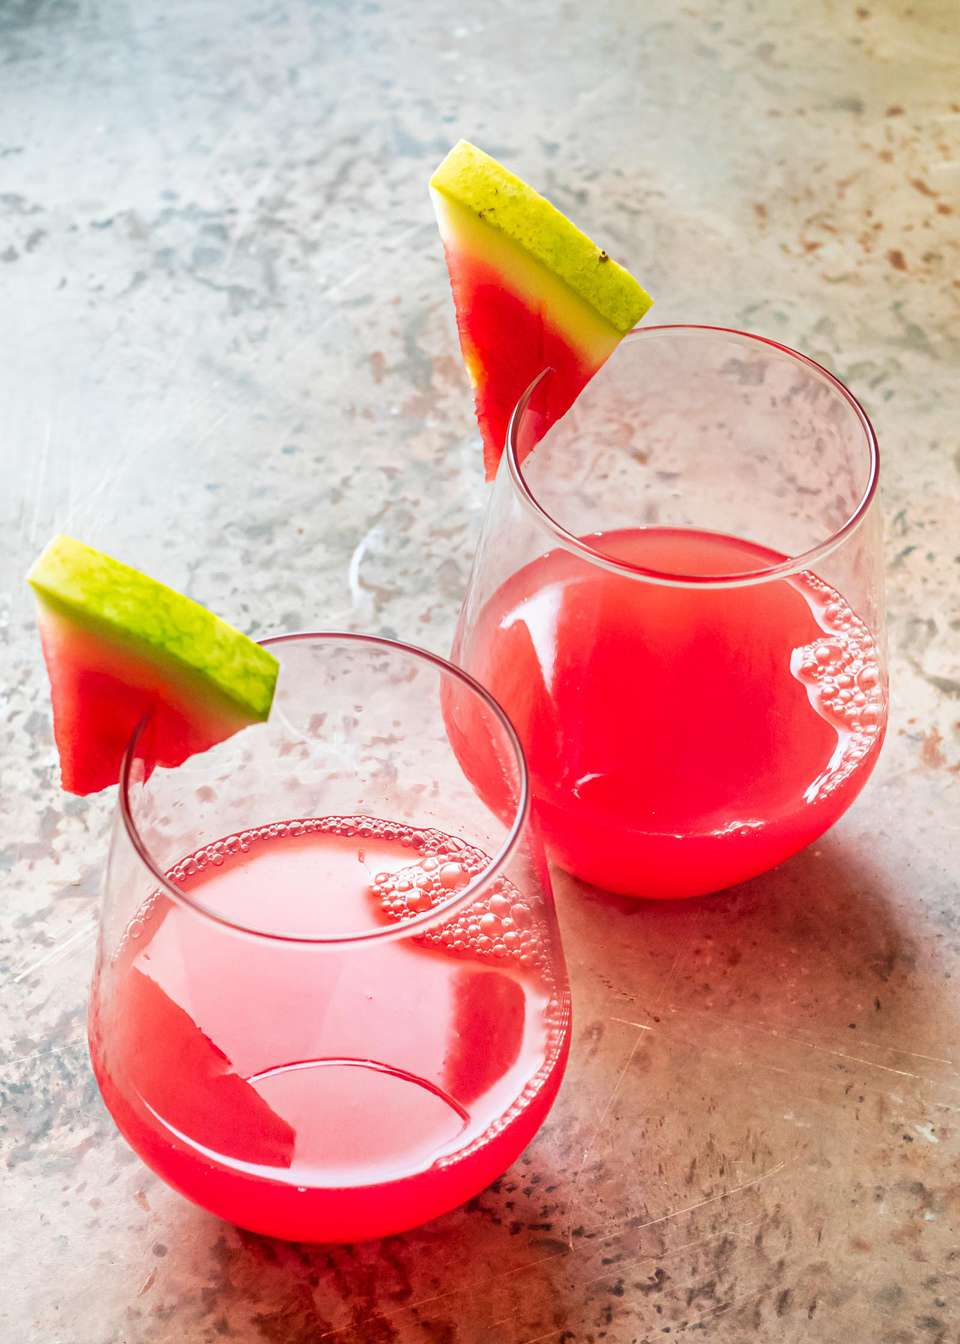 Two wine glasses with watermelon drinks inside and a thin slice of watermelon on the edge.